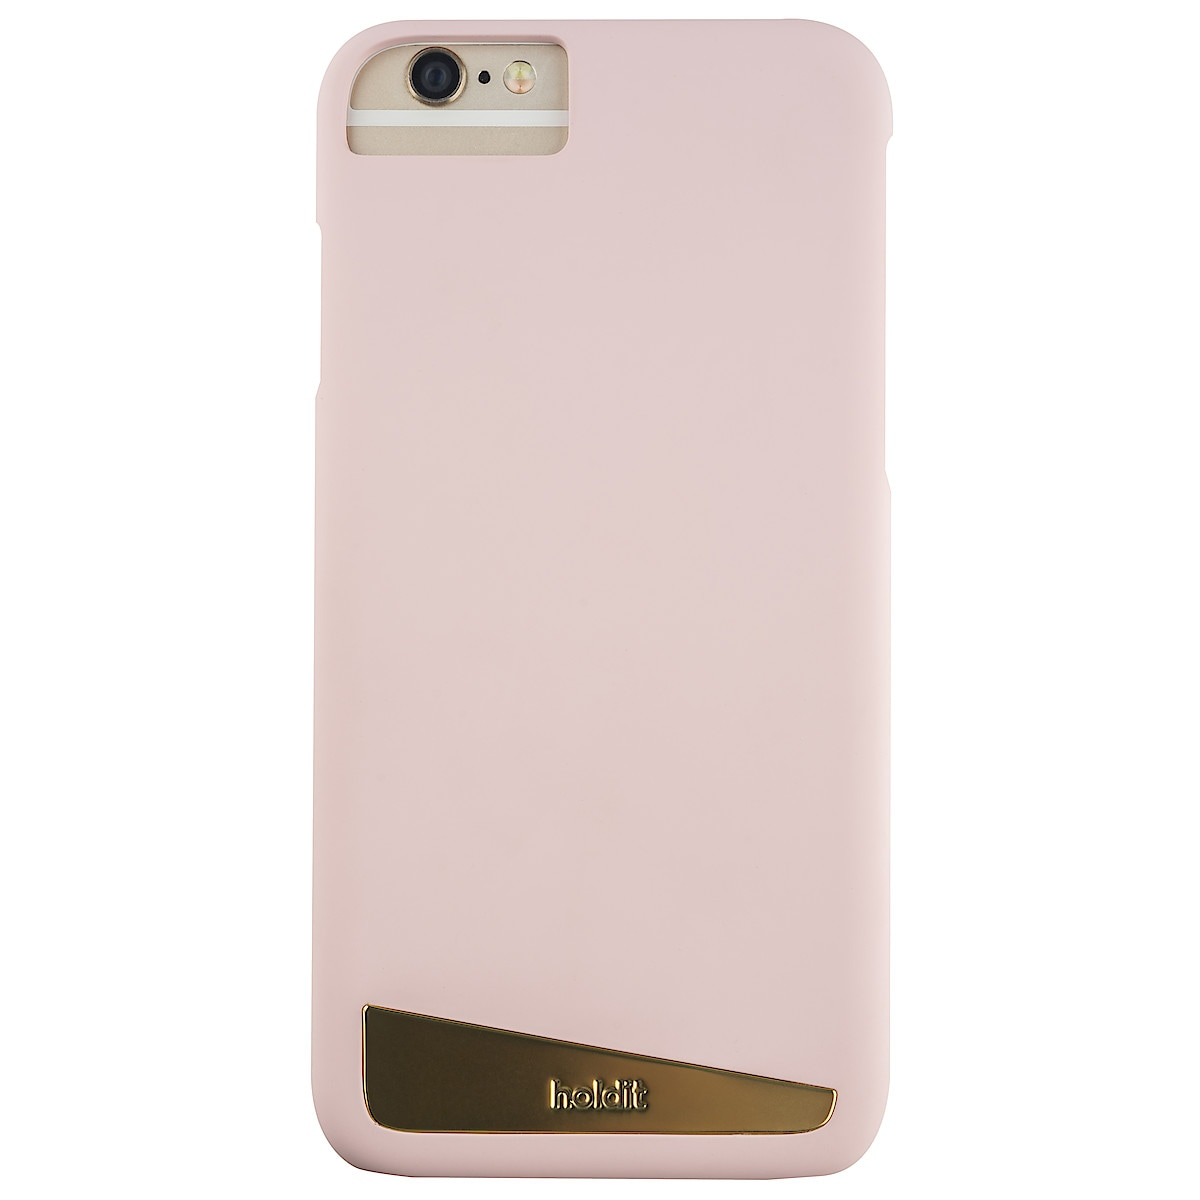 Holdit Langasand Silke Case for iPhone 6/6S/7